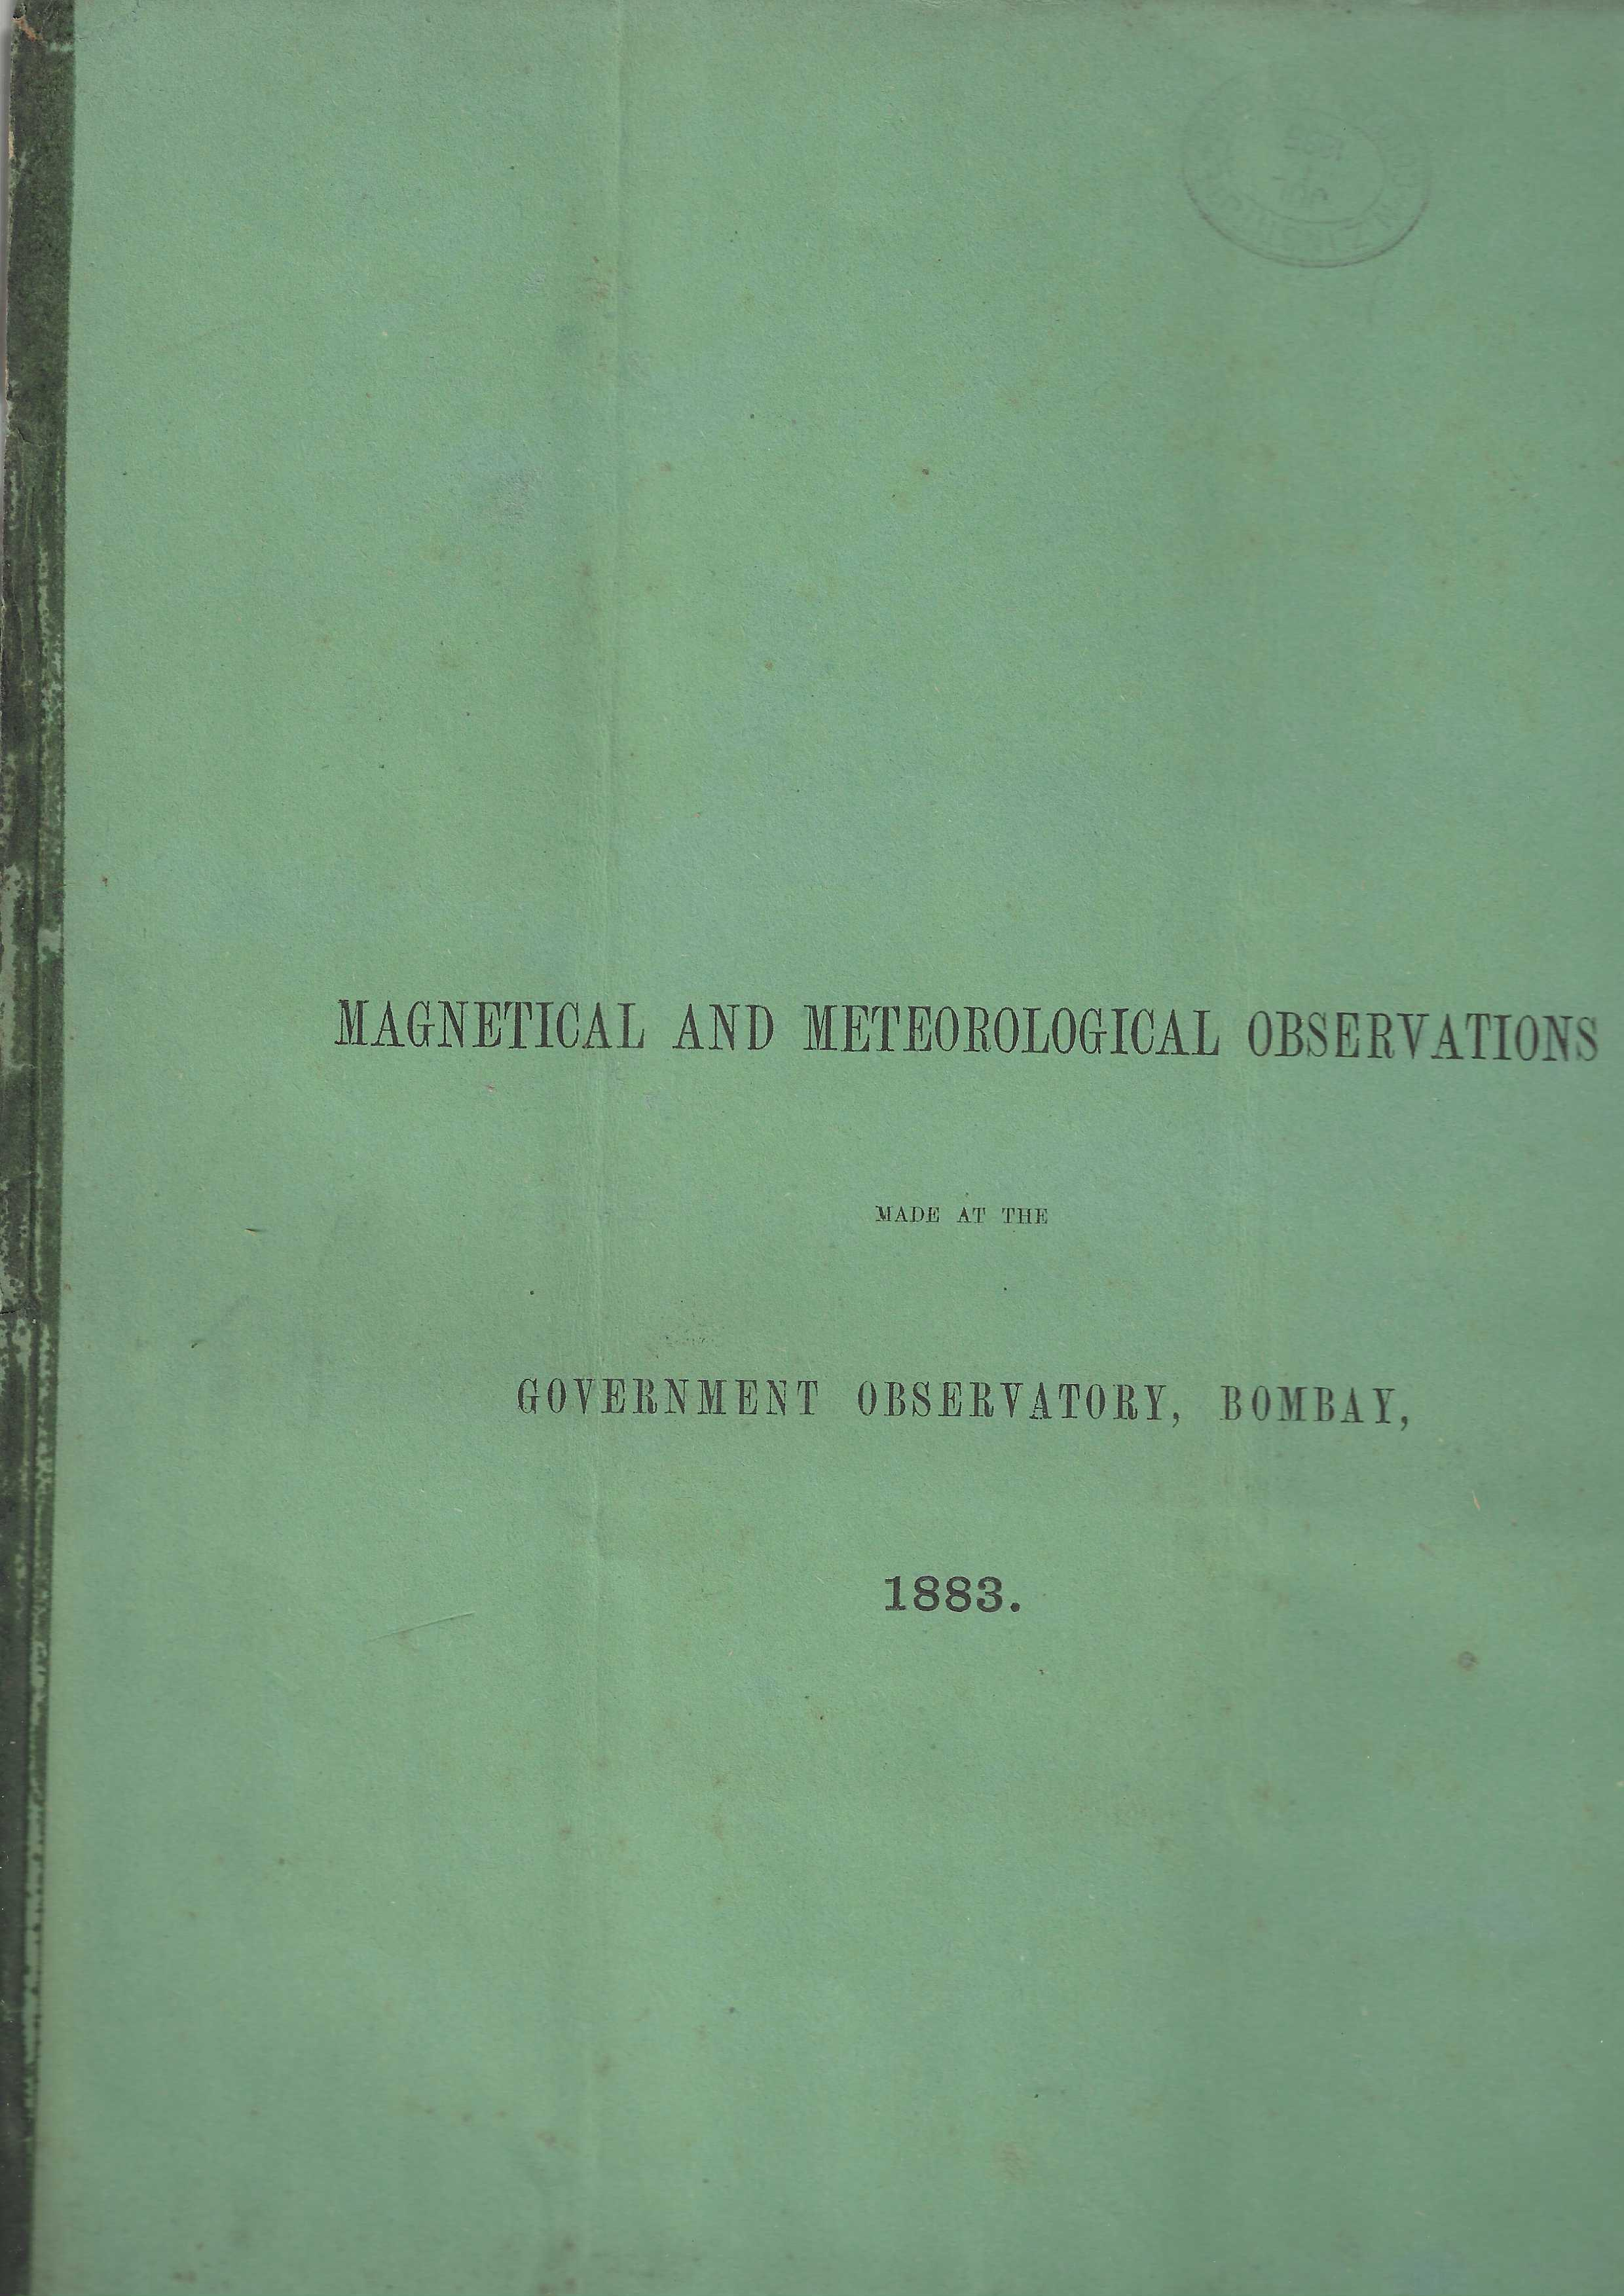 Image for Magnetical and Meteorological Observations made at the Government Observatory, Bombay, in the Year 1883.